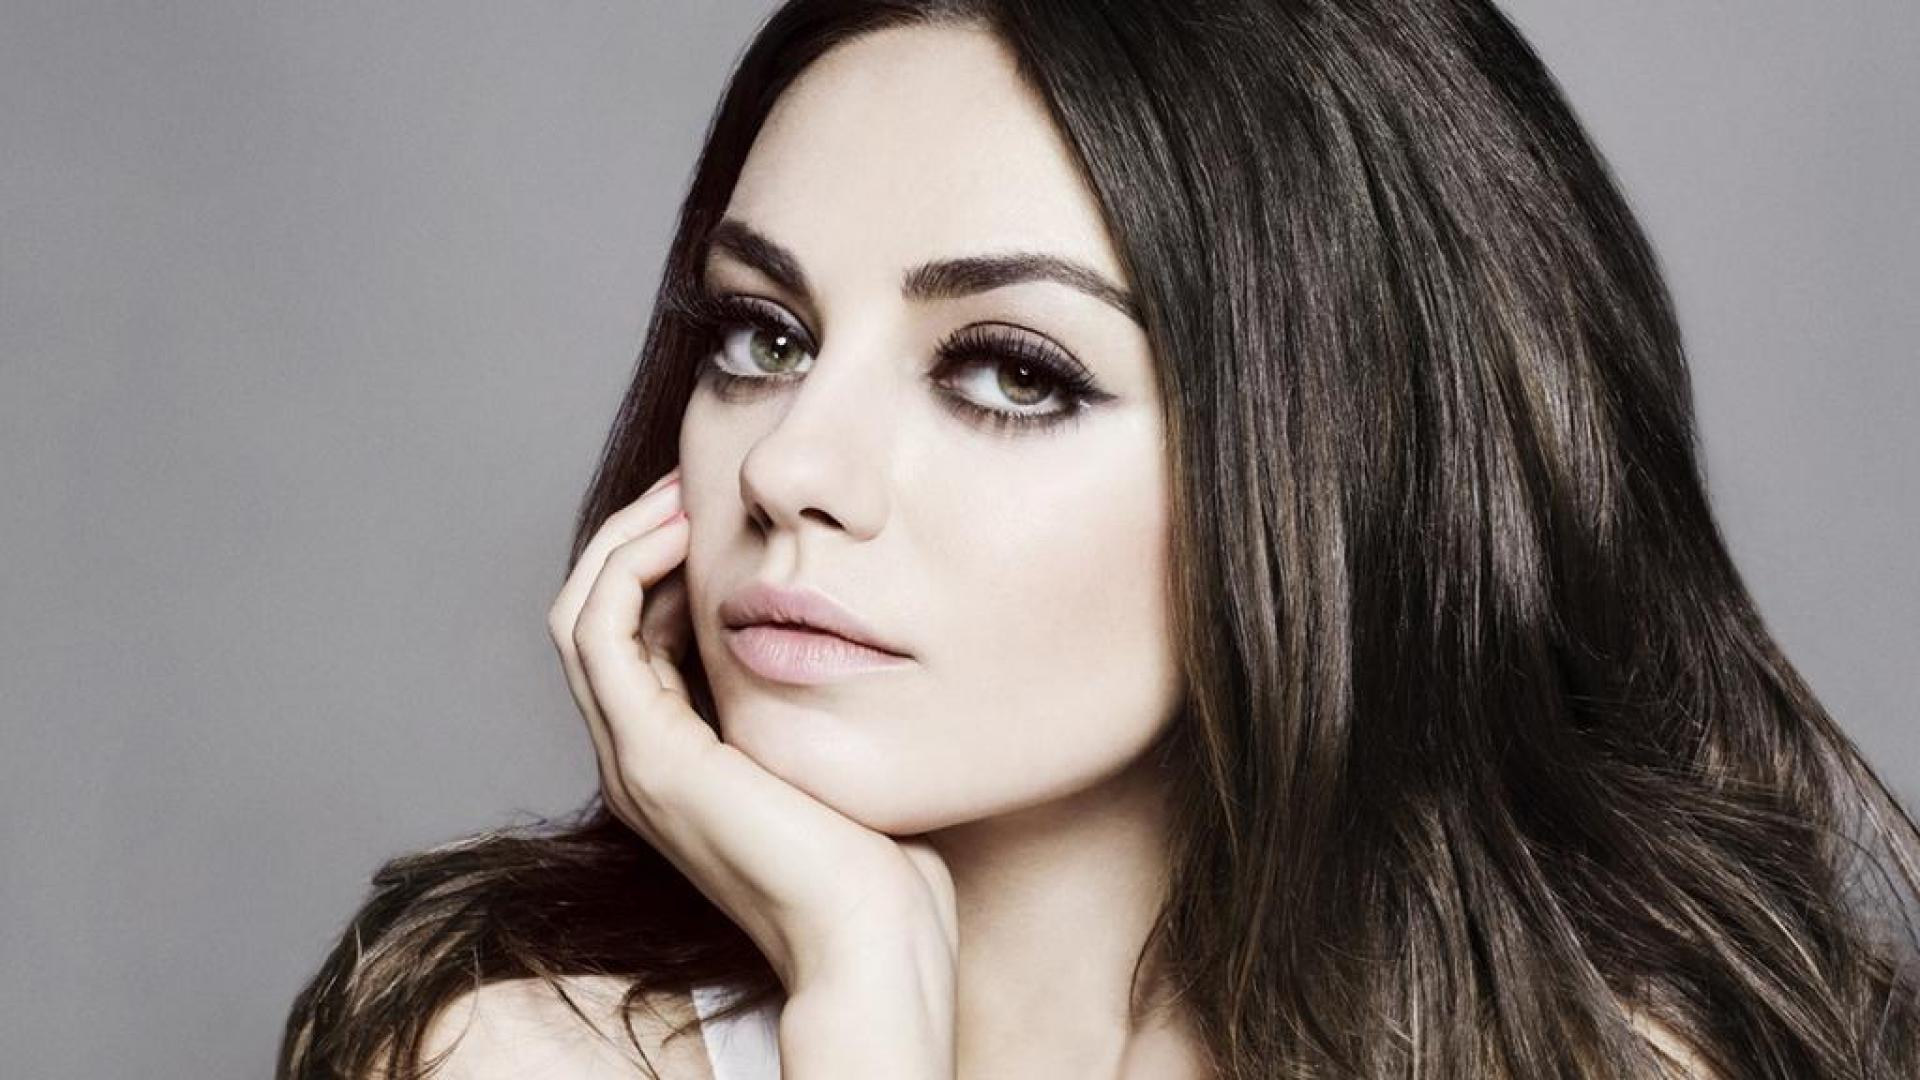 Wallpaper Tags: kunis mila mila kunis actress face beautiful model